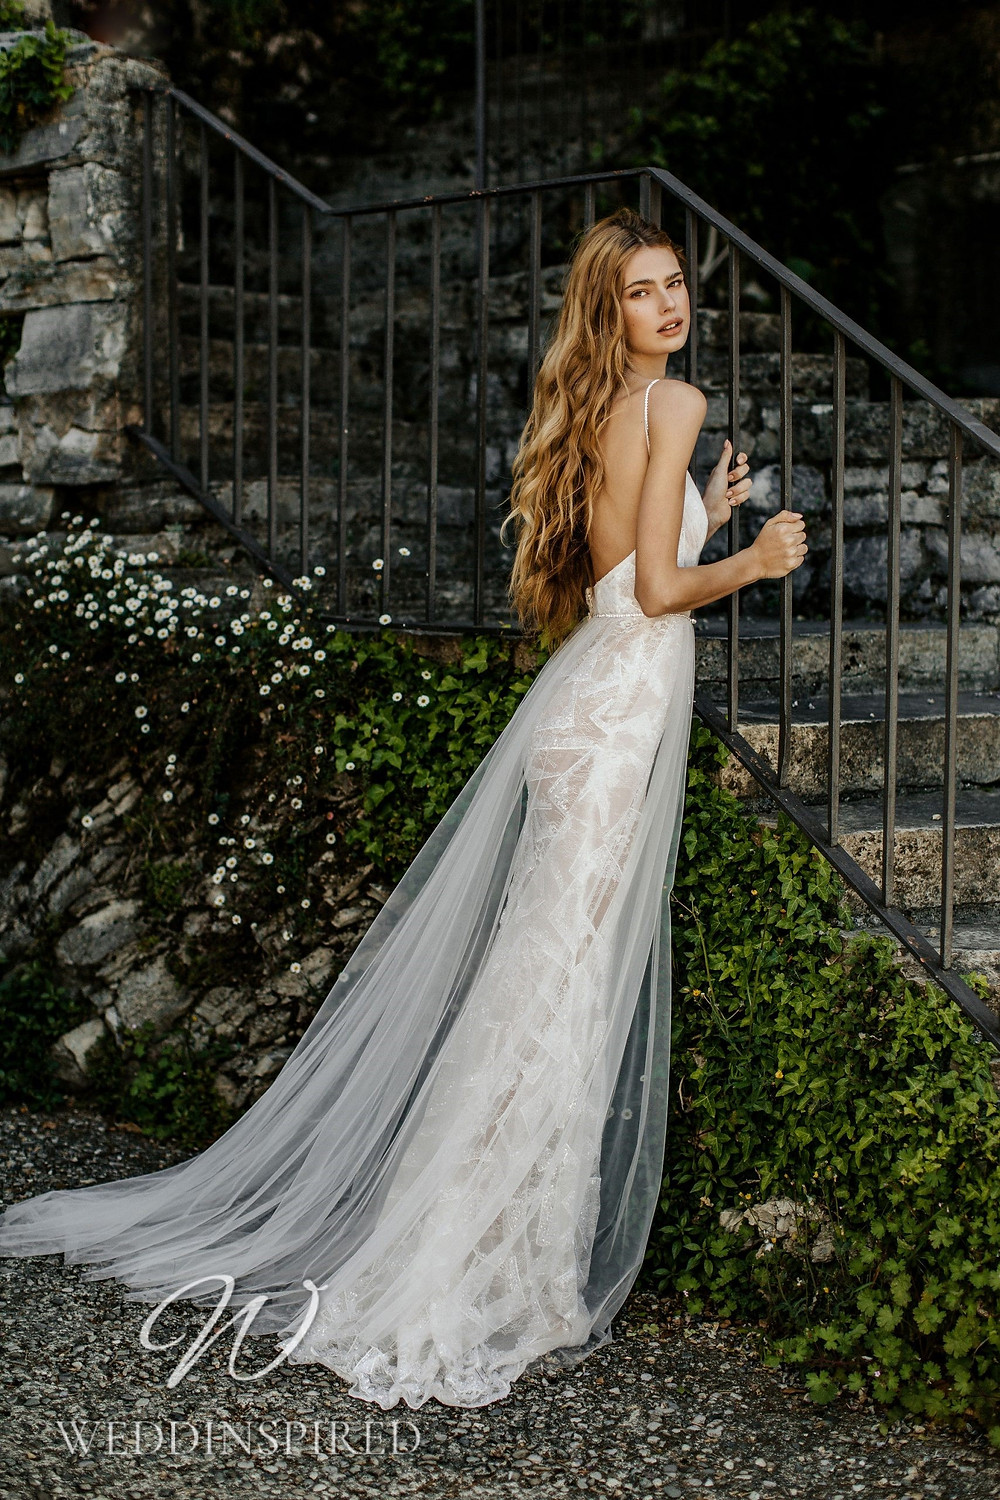 A Berta 2022 lace and tulle mermaid wedding dress